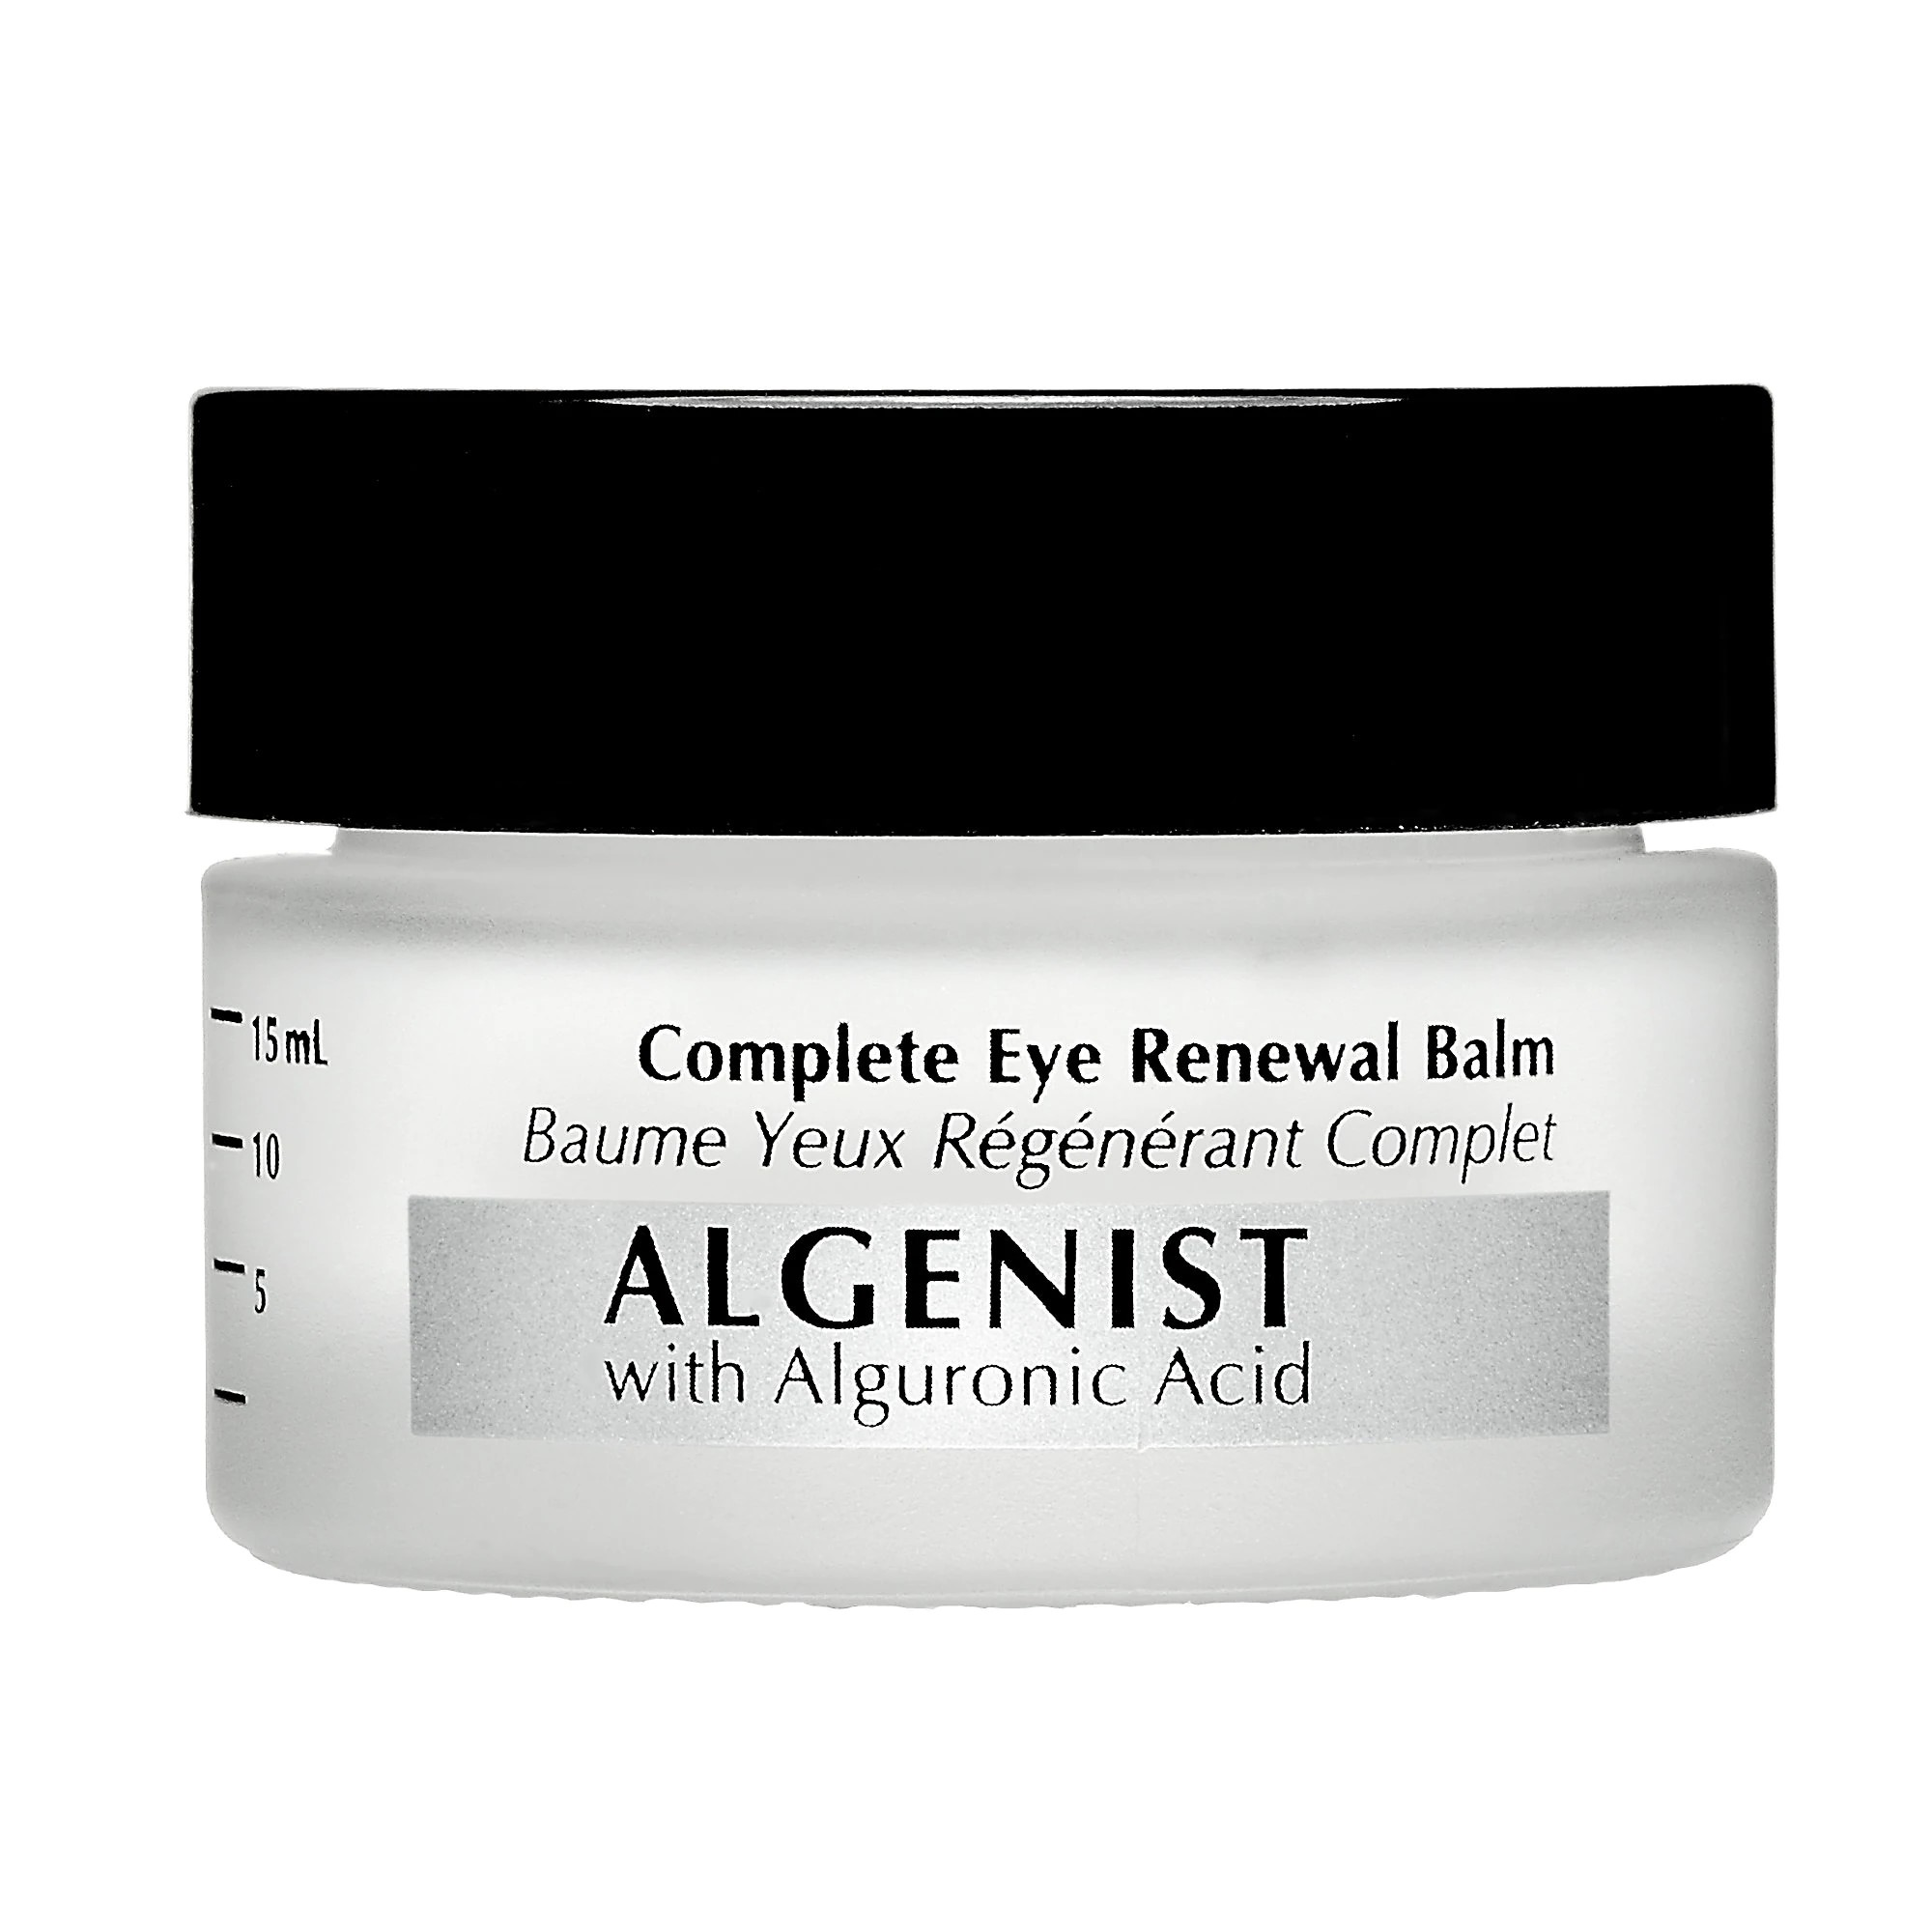 Algenist - Complete Eye Renewal Balm